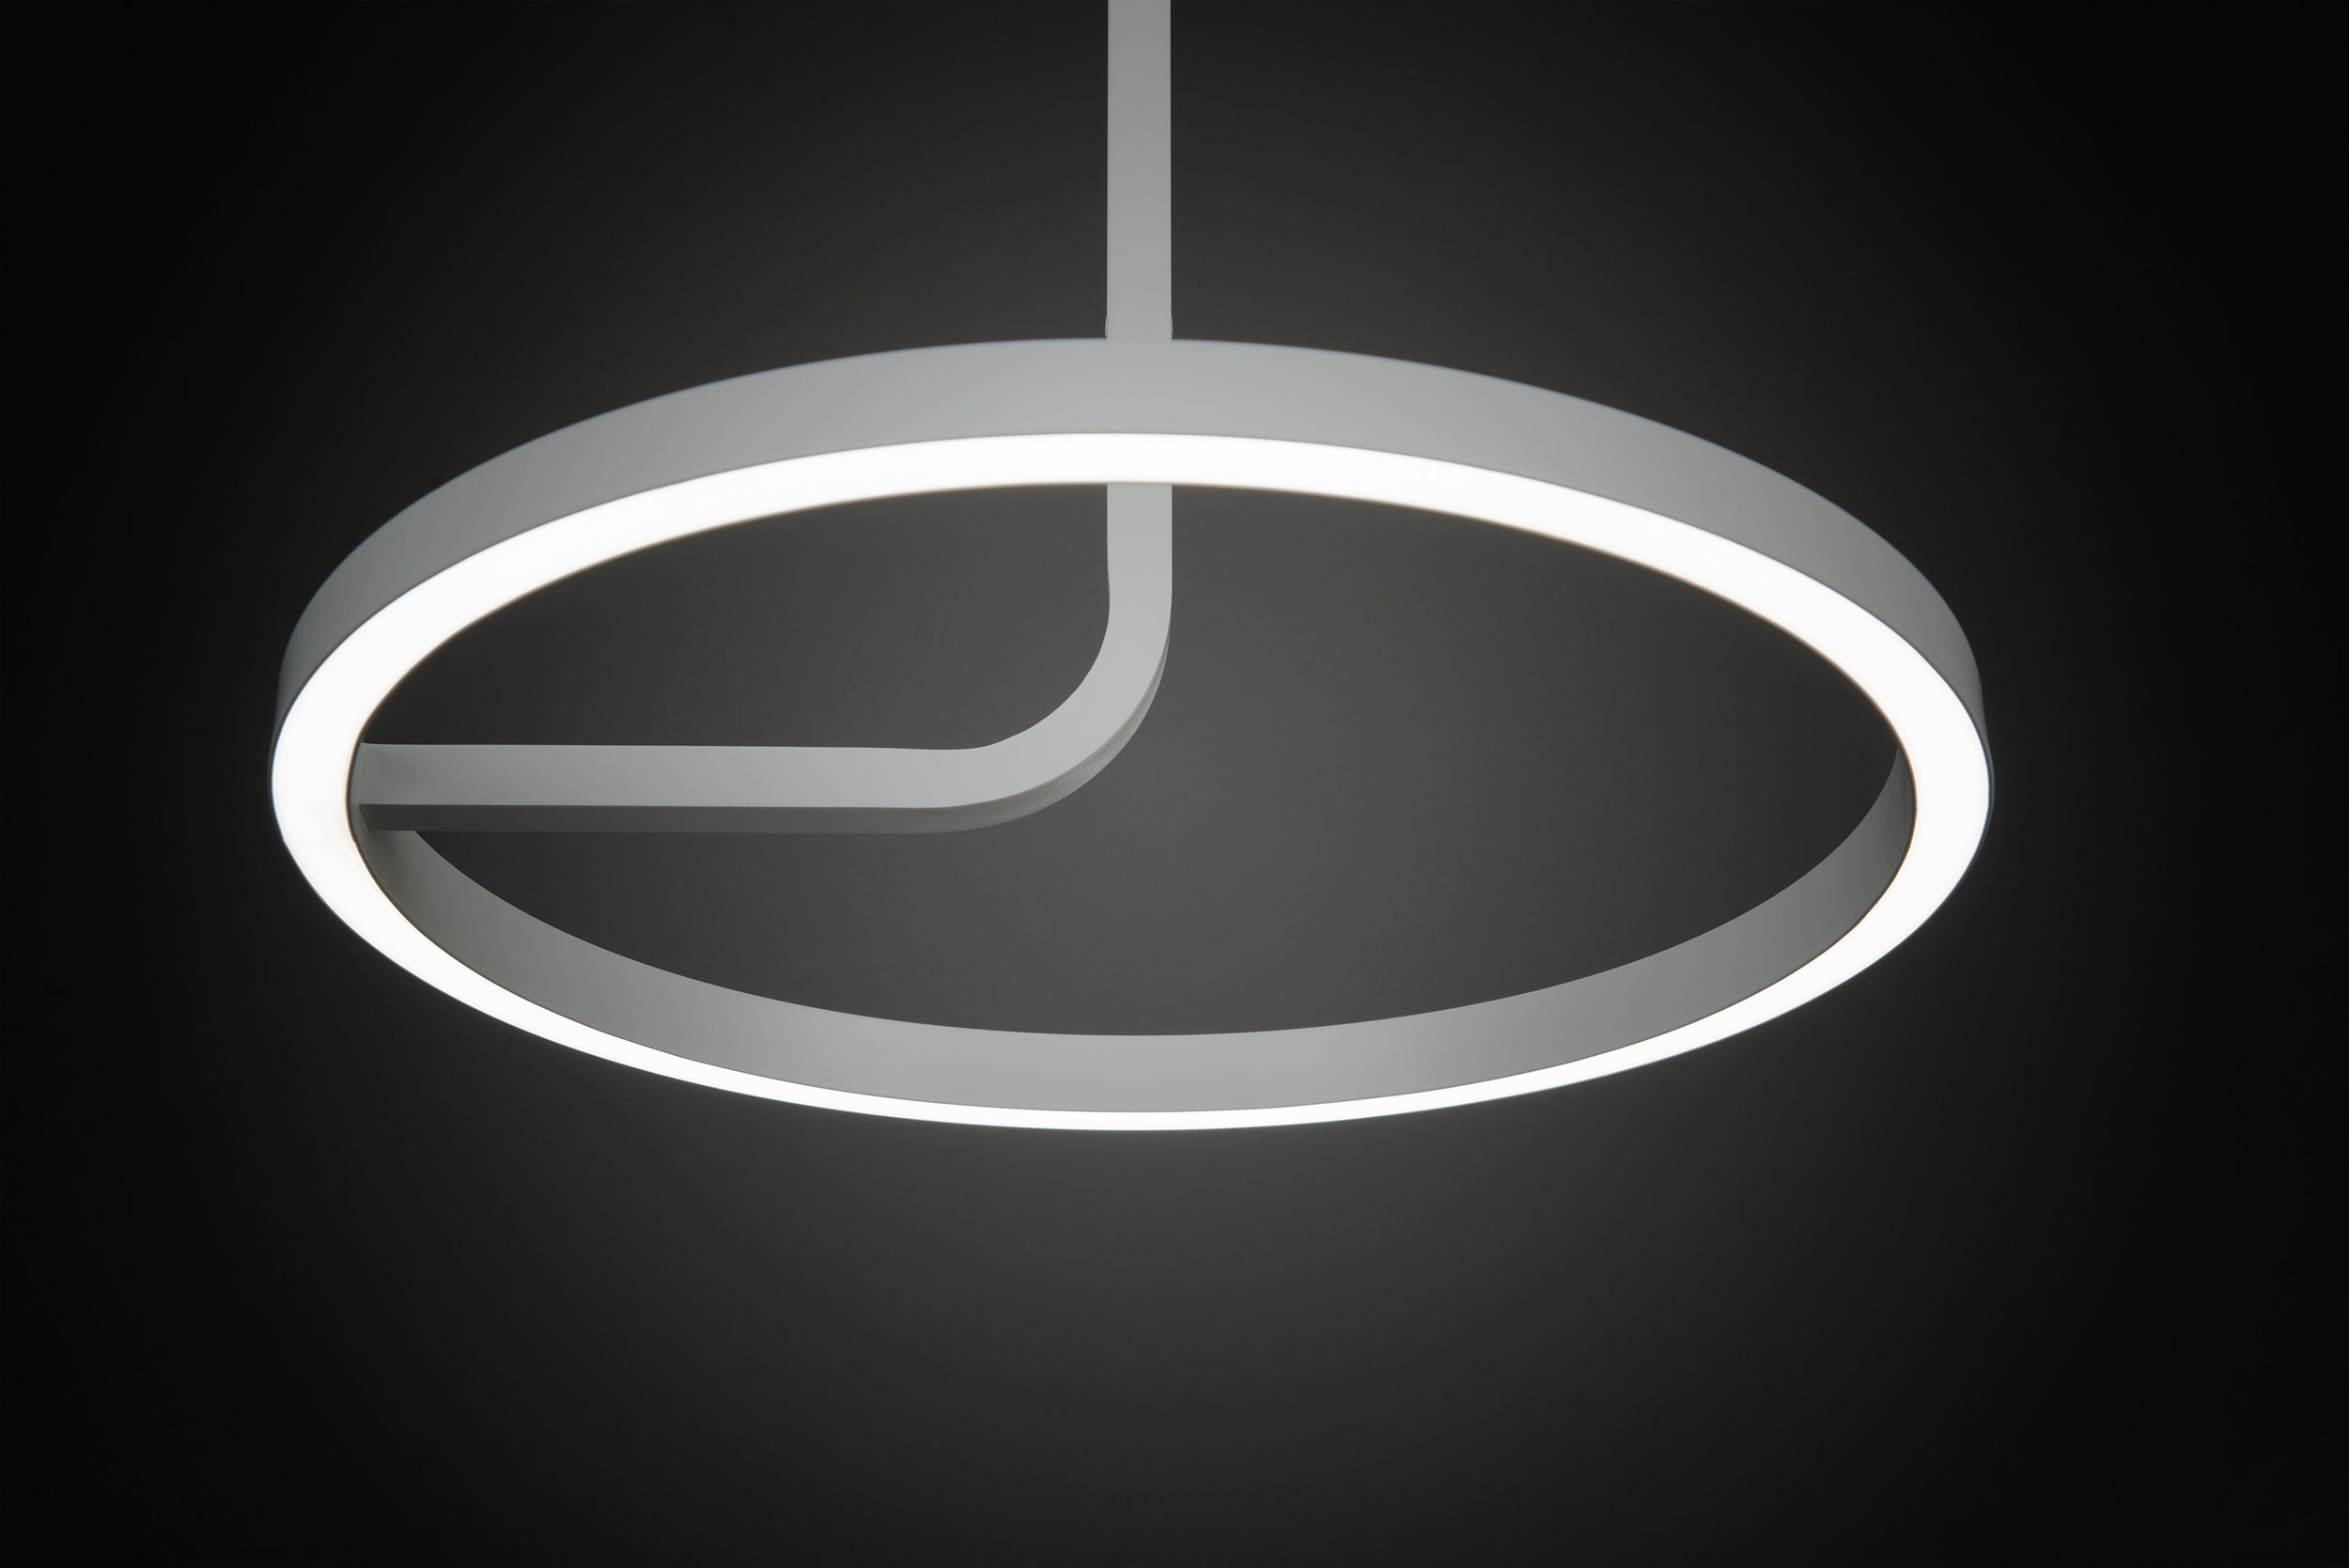 Enabling New Designs - The Hoopla Pendant's slim design is made possible thanks to new LED technology